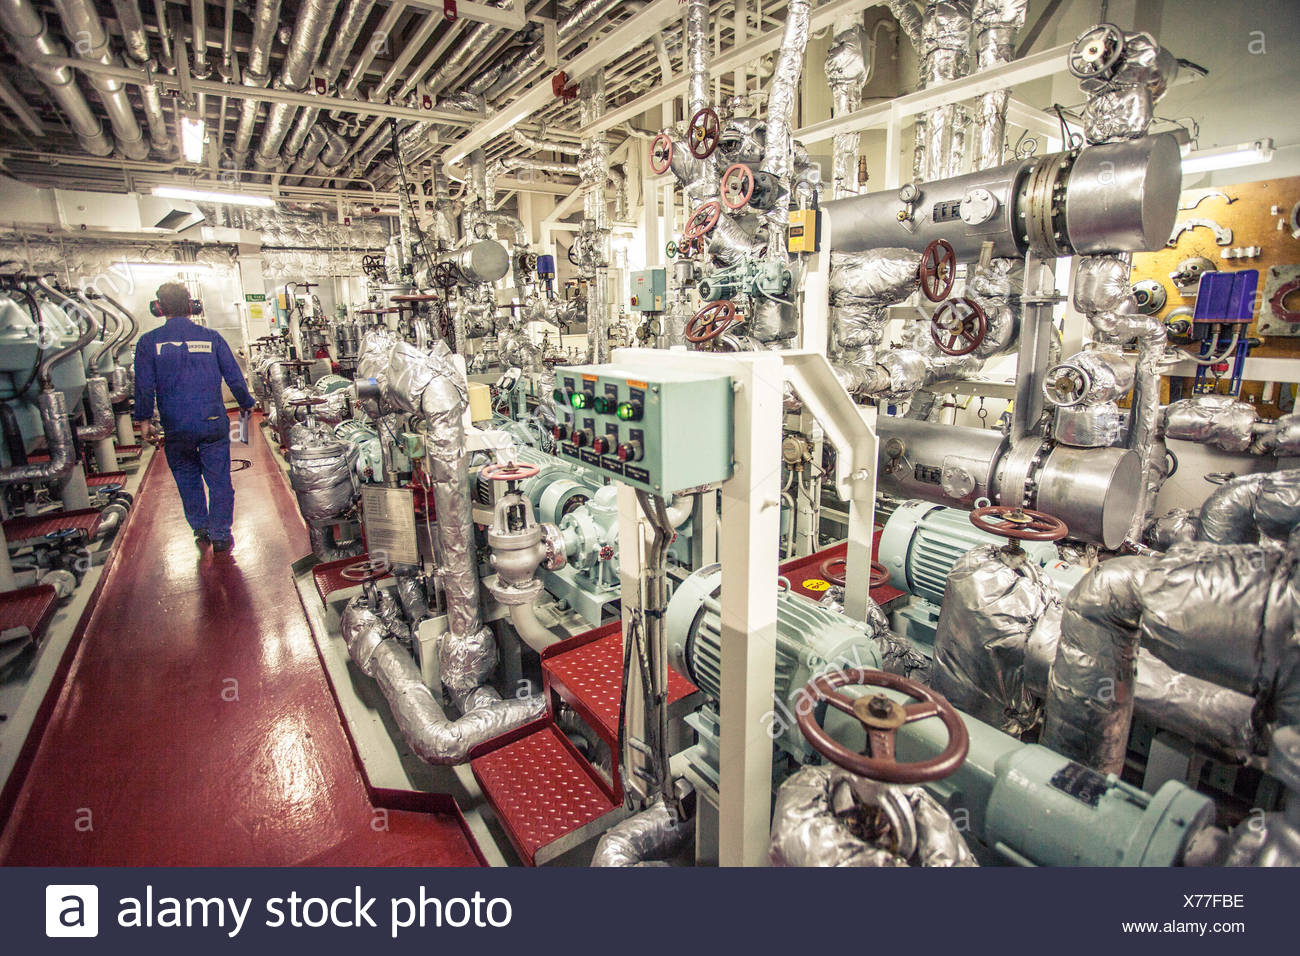 life support systems stock photos life support systems stock